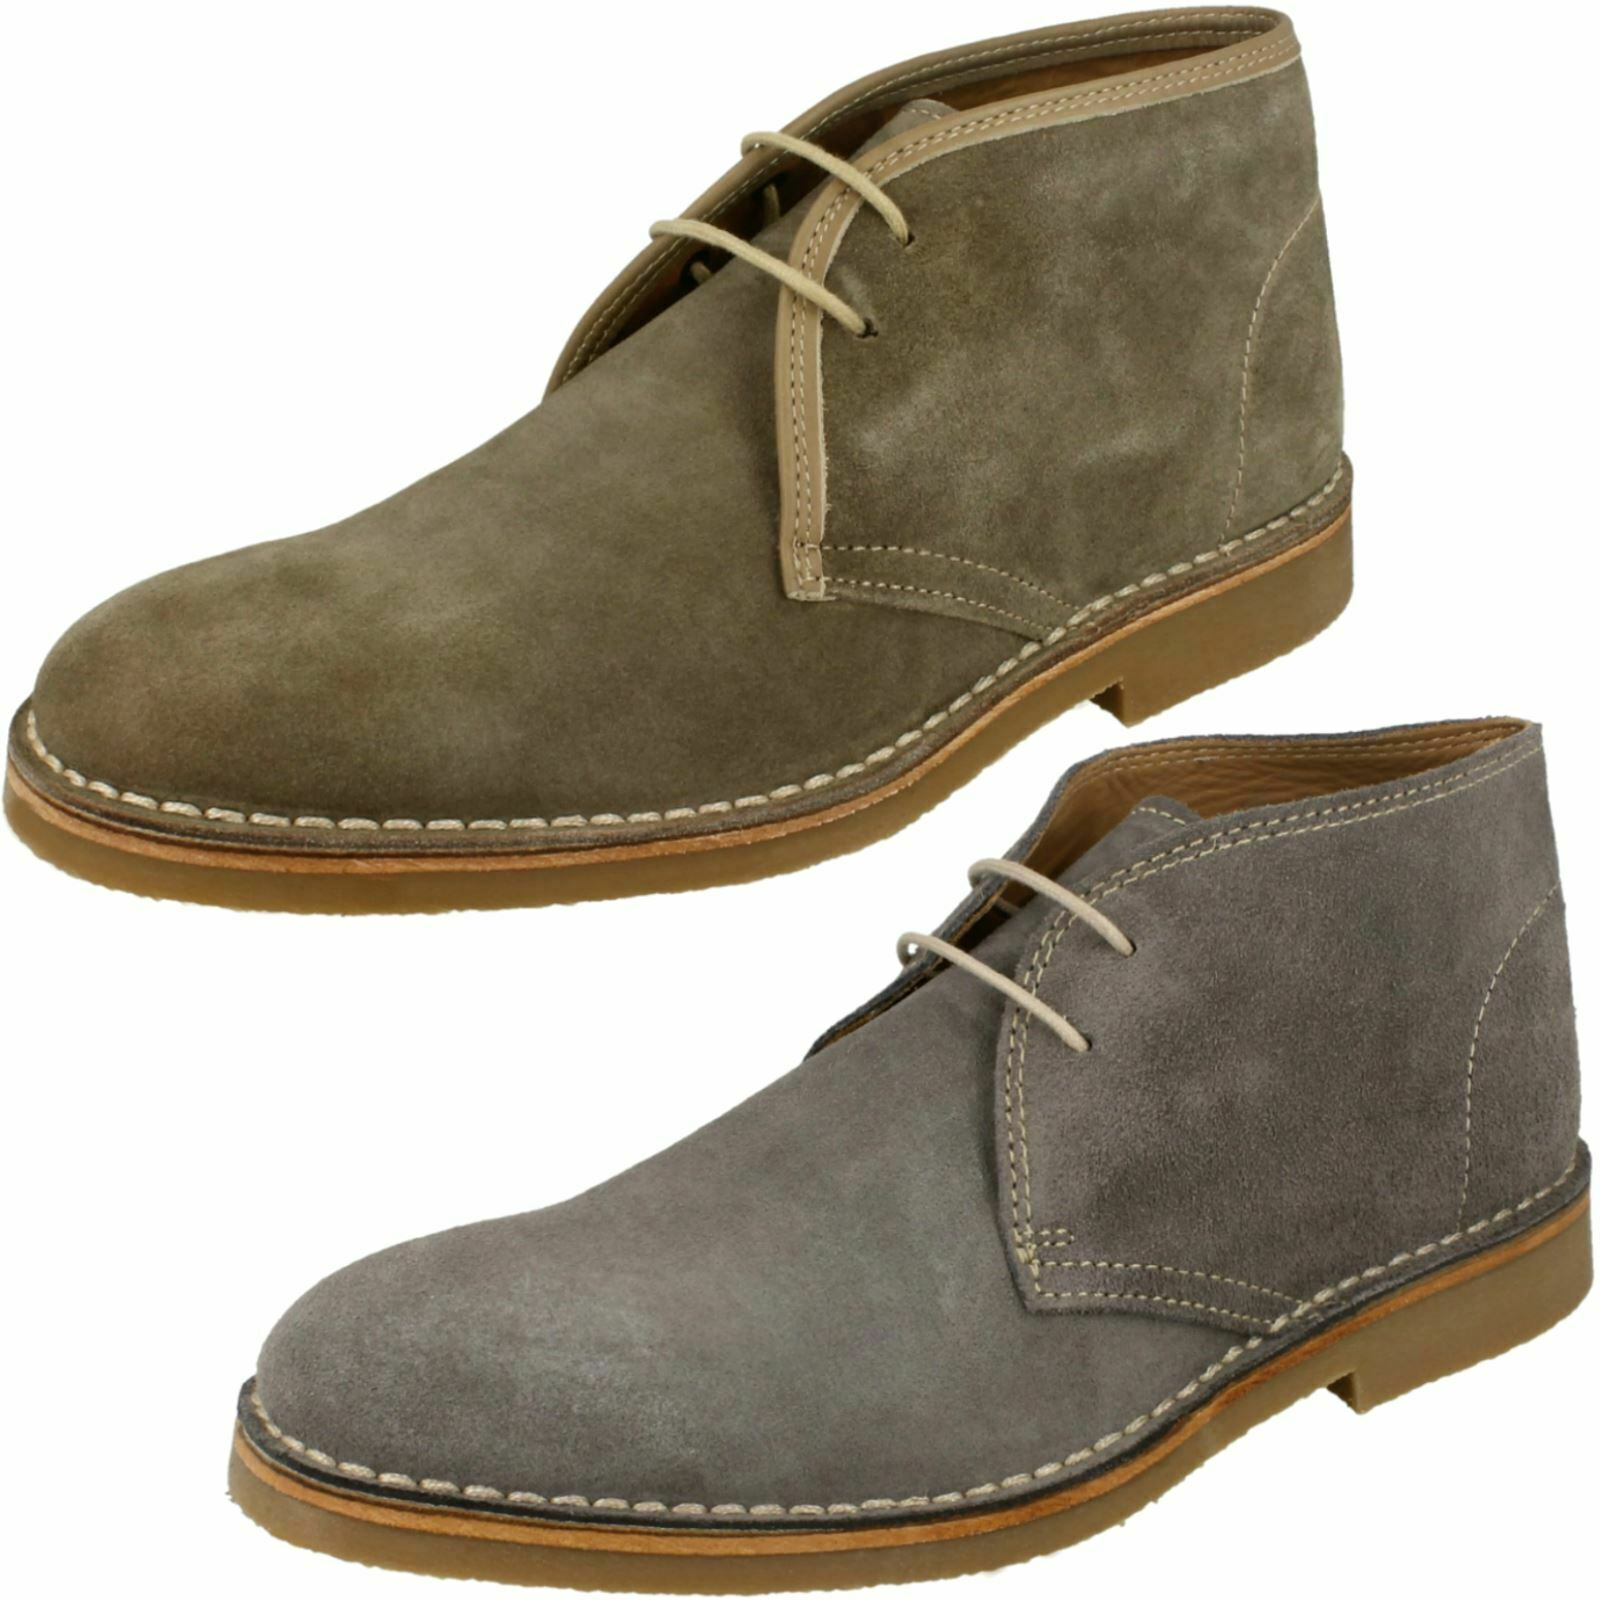 Mens Loake Lace Up Boots - Kalahari